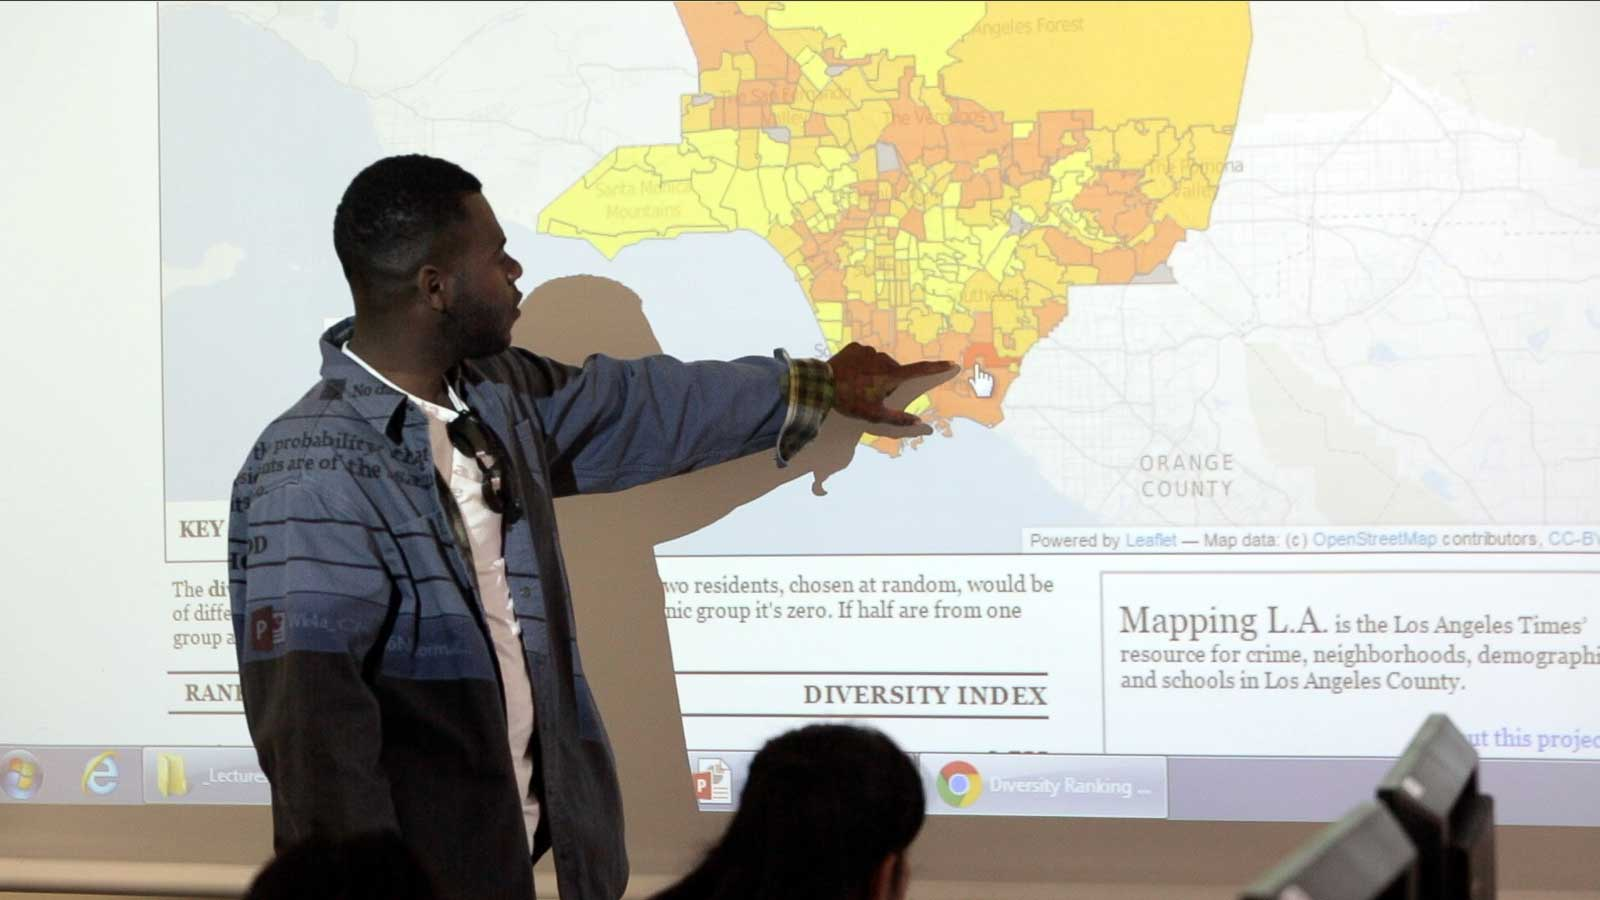 Sociology student, Justin Bailey, points to areas in LA that have high ethnic diversity